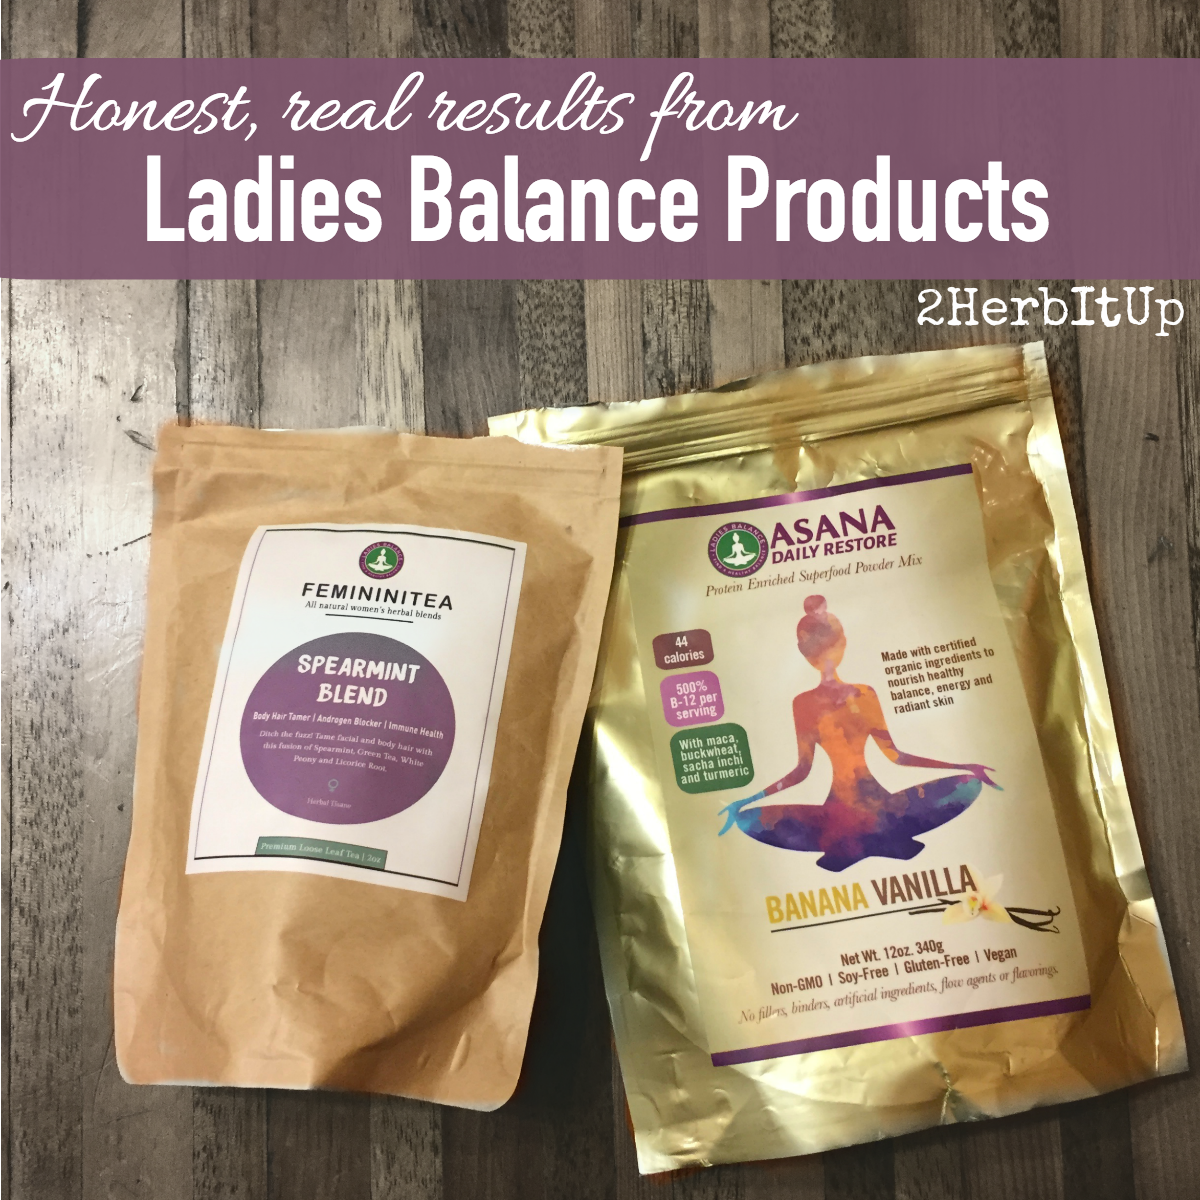 Ladies Balance products balance hormones naturally and effectively. Feel better with Ladies Balance.